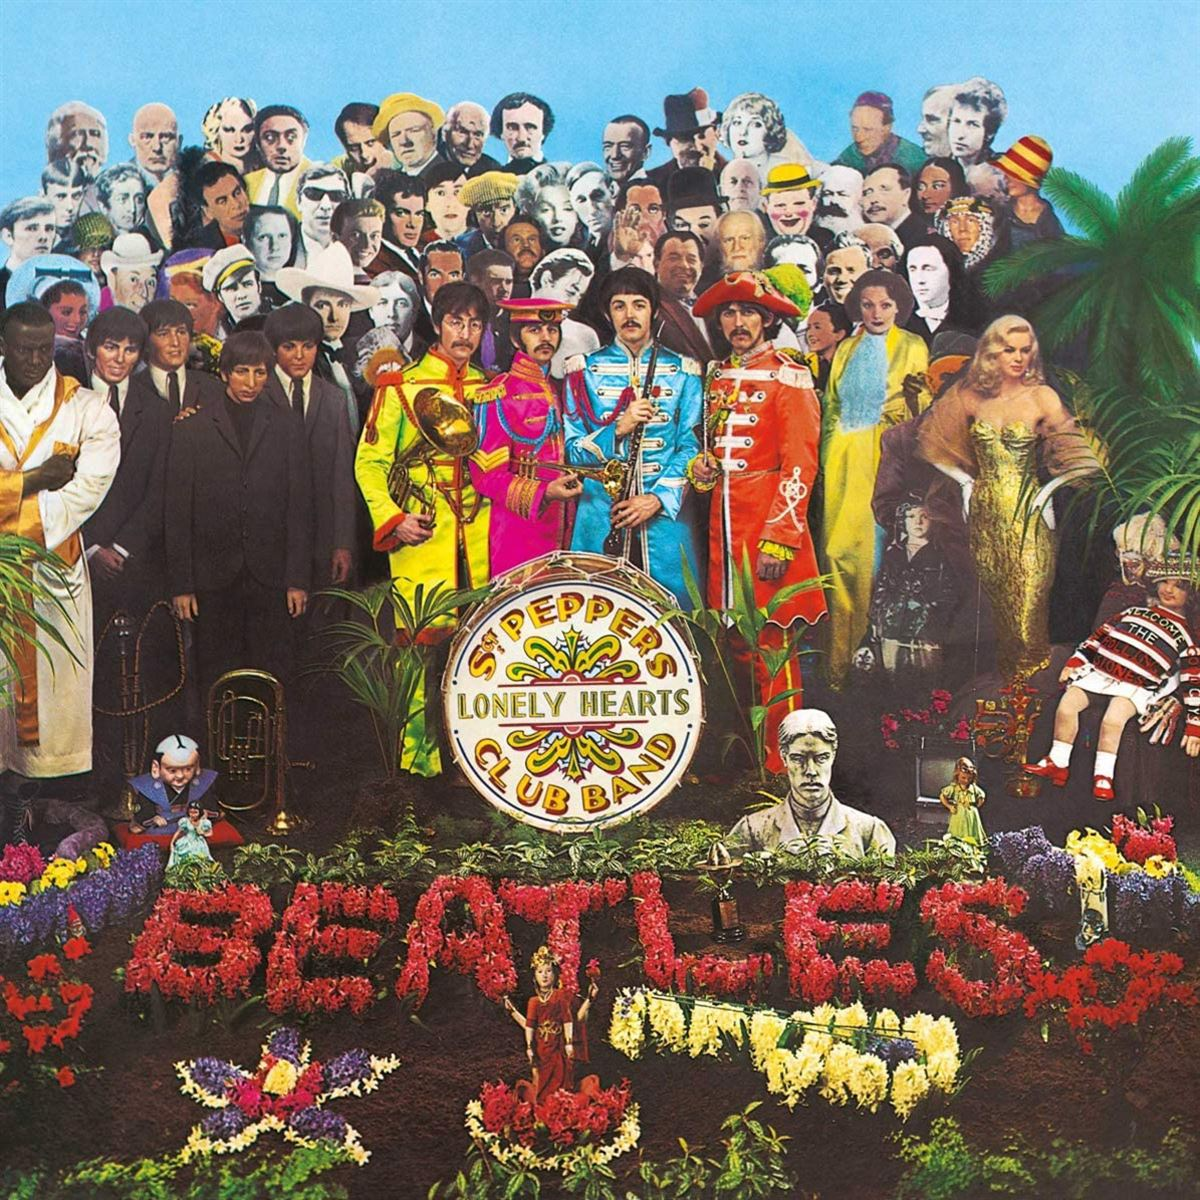 LP - The Beatles - Sgt. Pepper's Lonely Hearts Club Band (2017 Stereo)